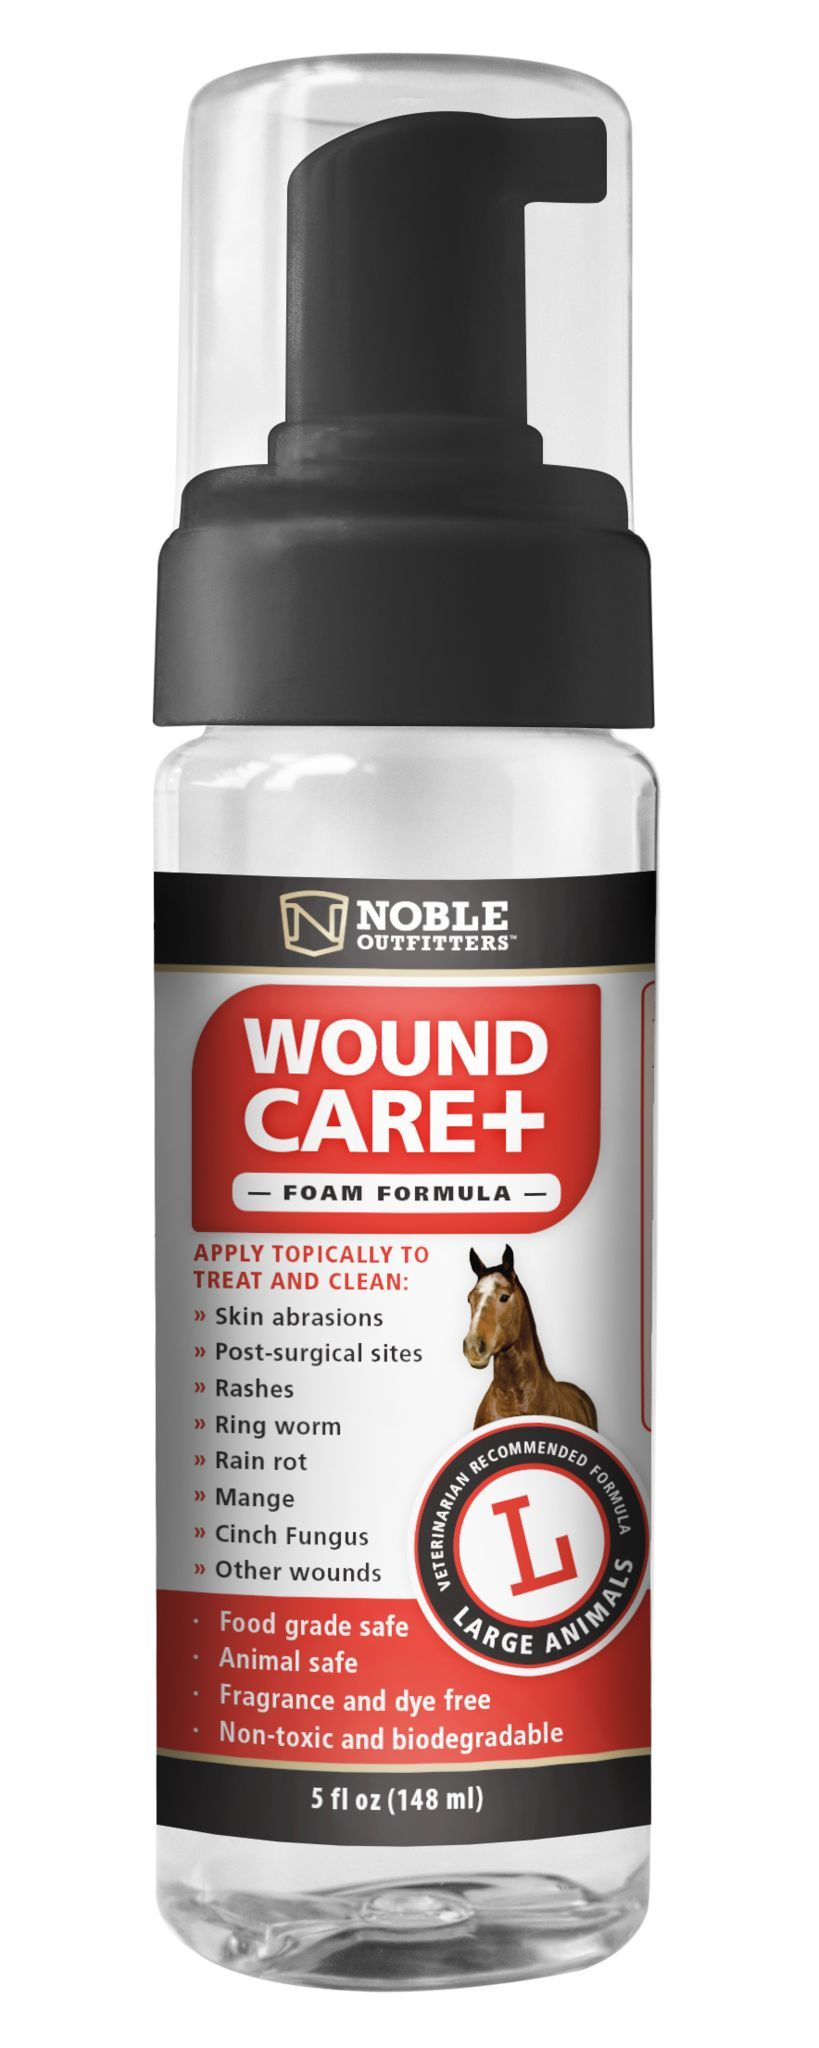 Noble Outfitters Wound Care Foam Formula Wound Care Fungi Recipe Biodegradable Products